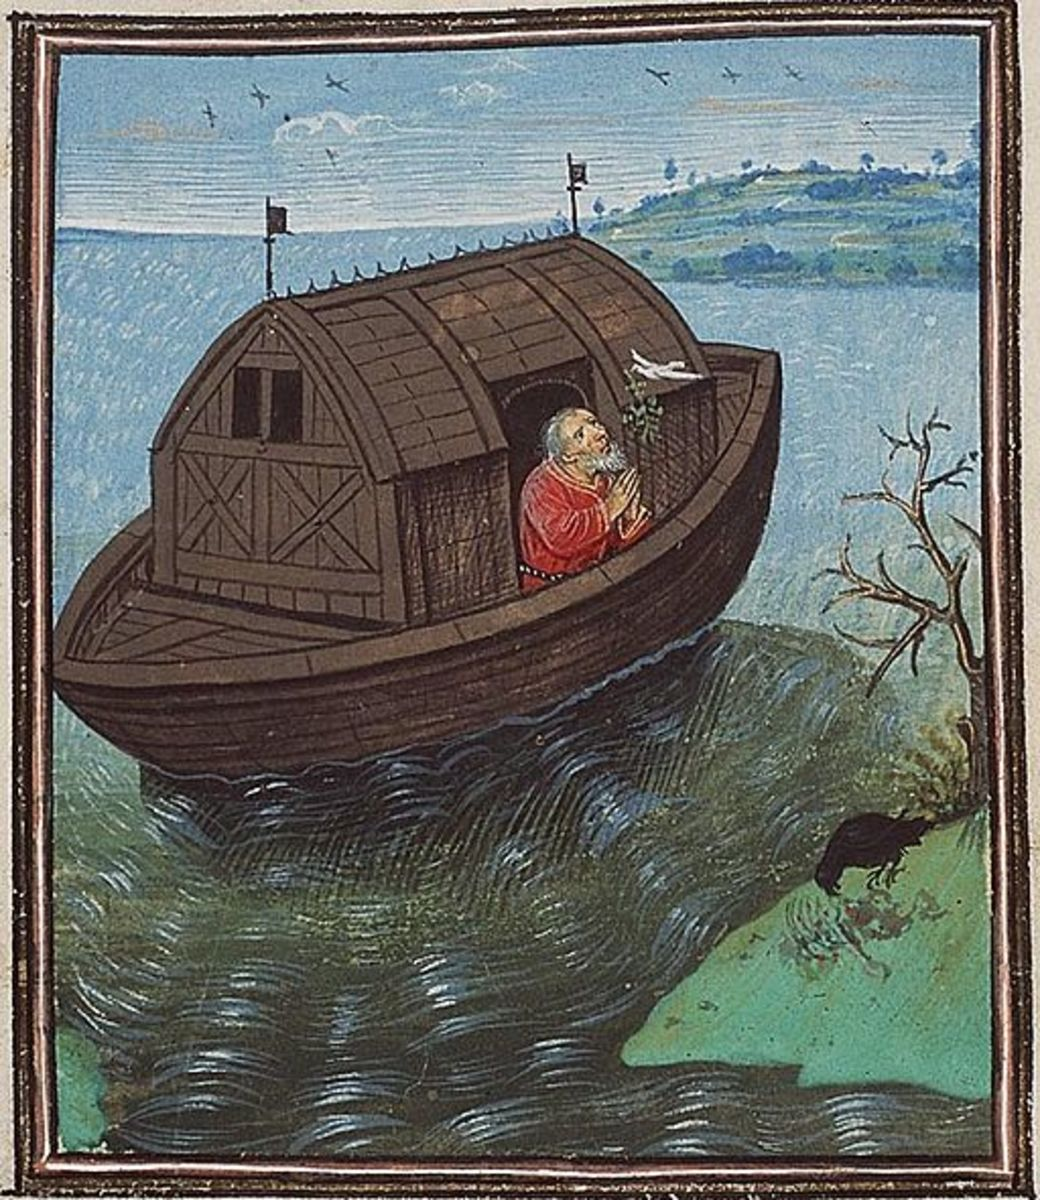 The story of Noah is borrowed from a much older Sumerian creation myth.